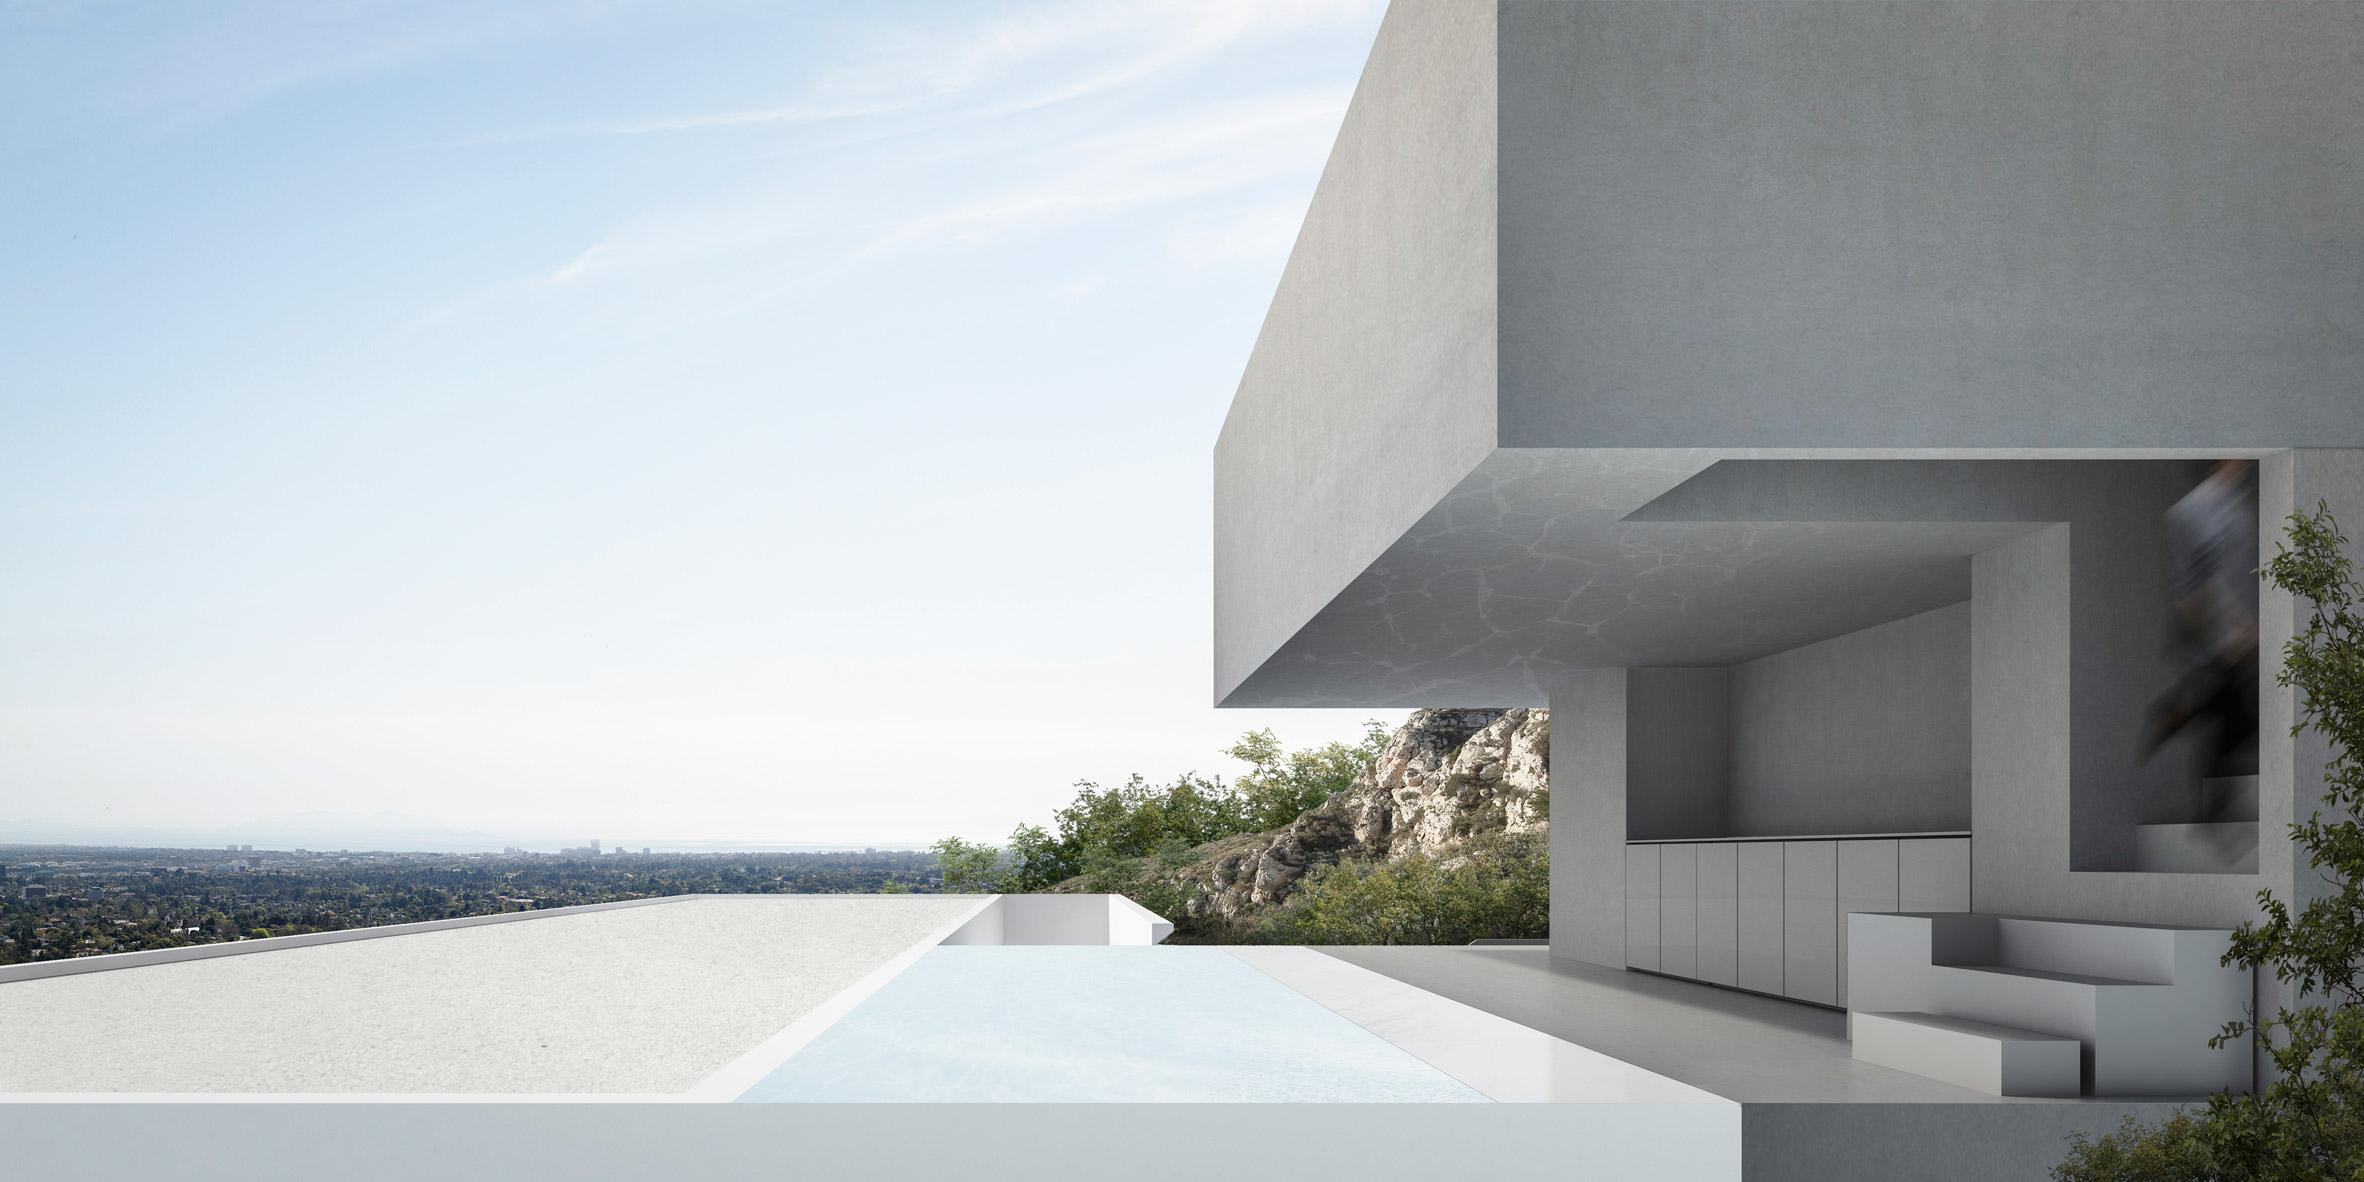 House in Hollywood Hills by Fran Silvestre Arquitectos